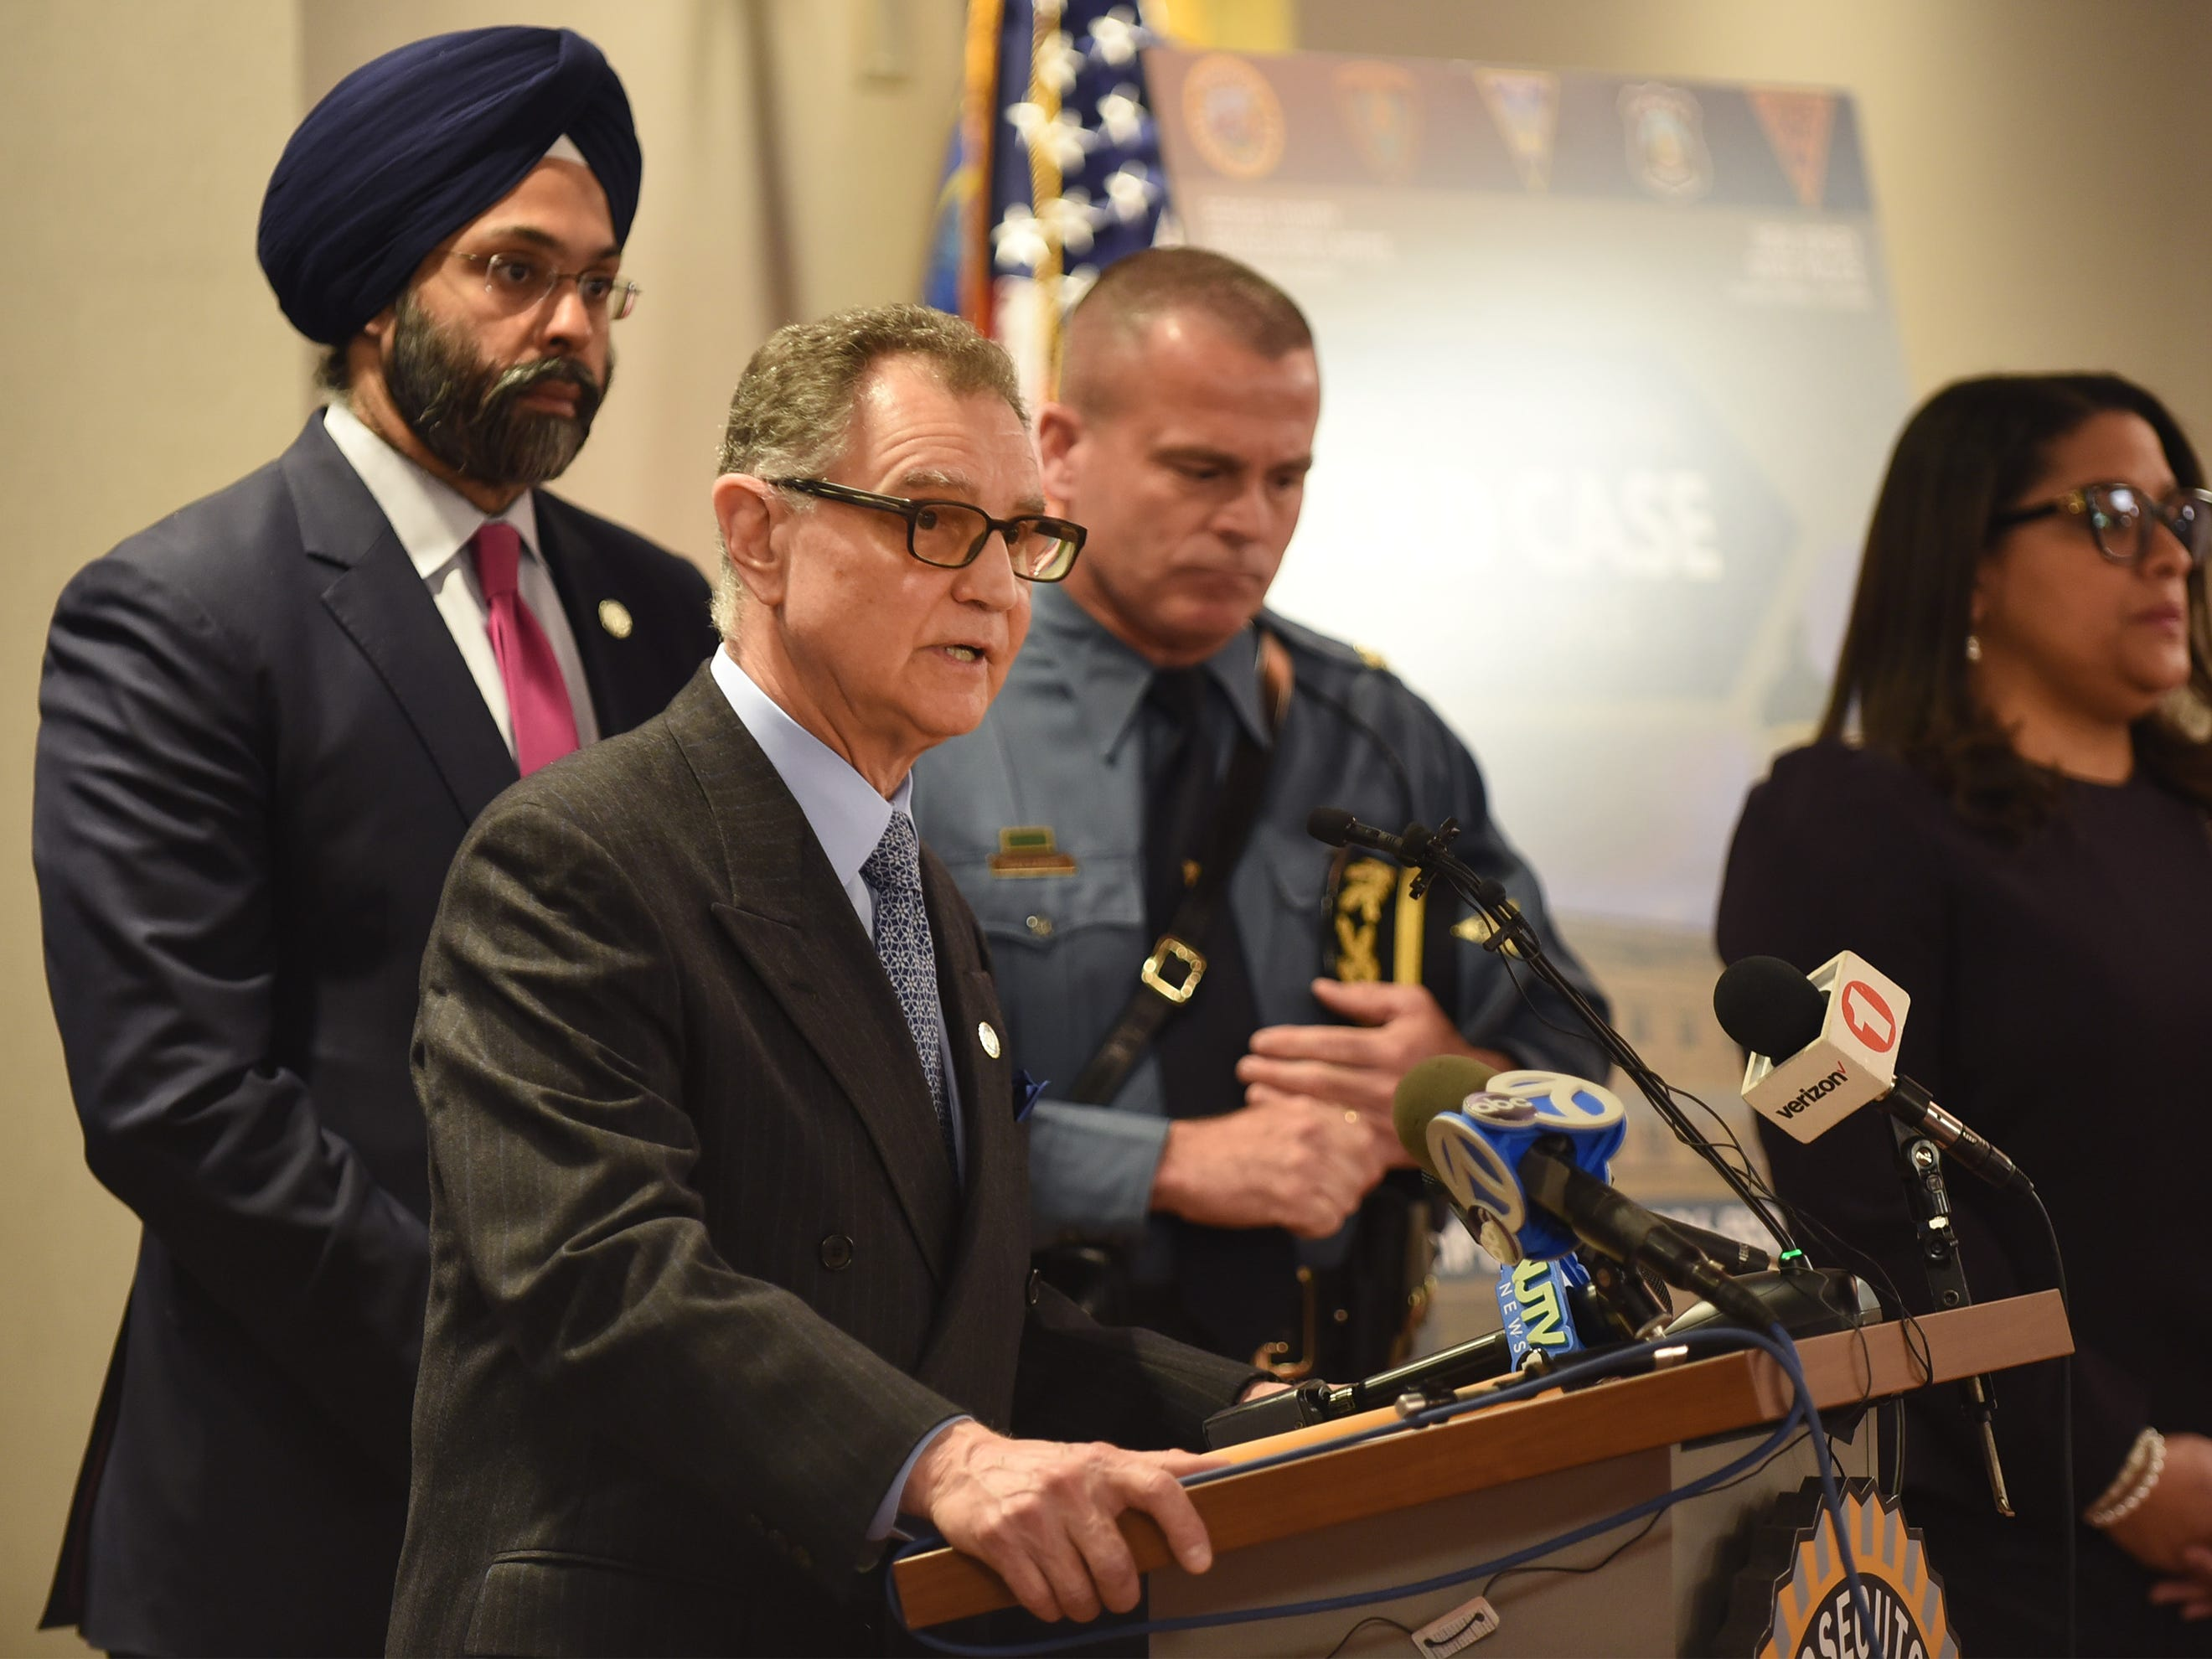 Dennis Calo, Acting Bergen County Prosecutor, speaks to the media during a press conference to announce the expansion of the Bergen County Cold Case Homicide Unit at Bergen County Plaza in Hackensack on 4/4/19.